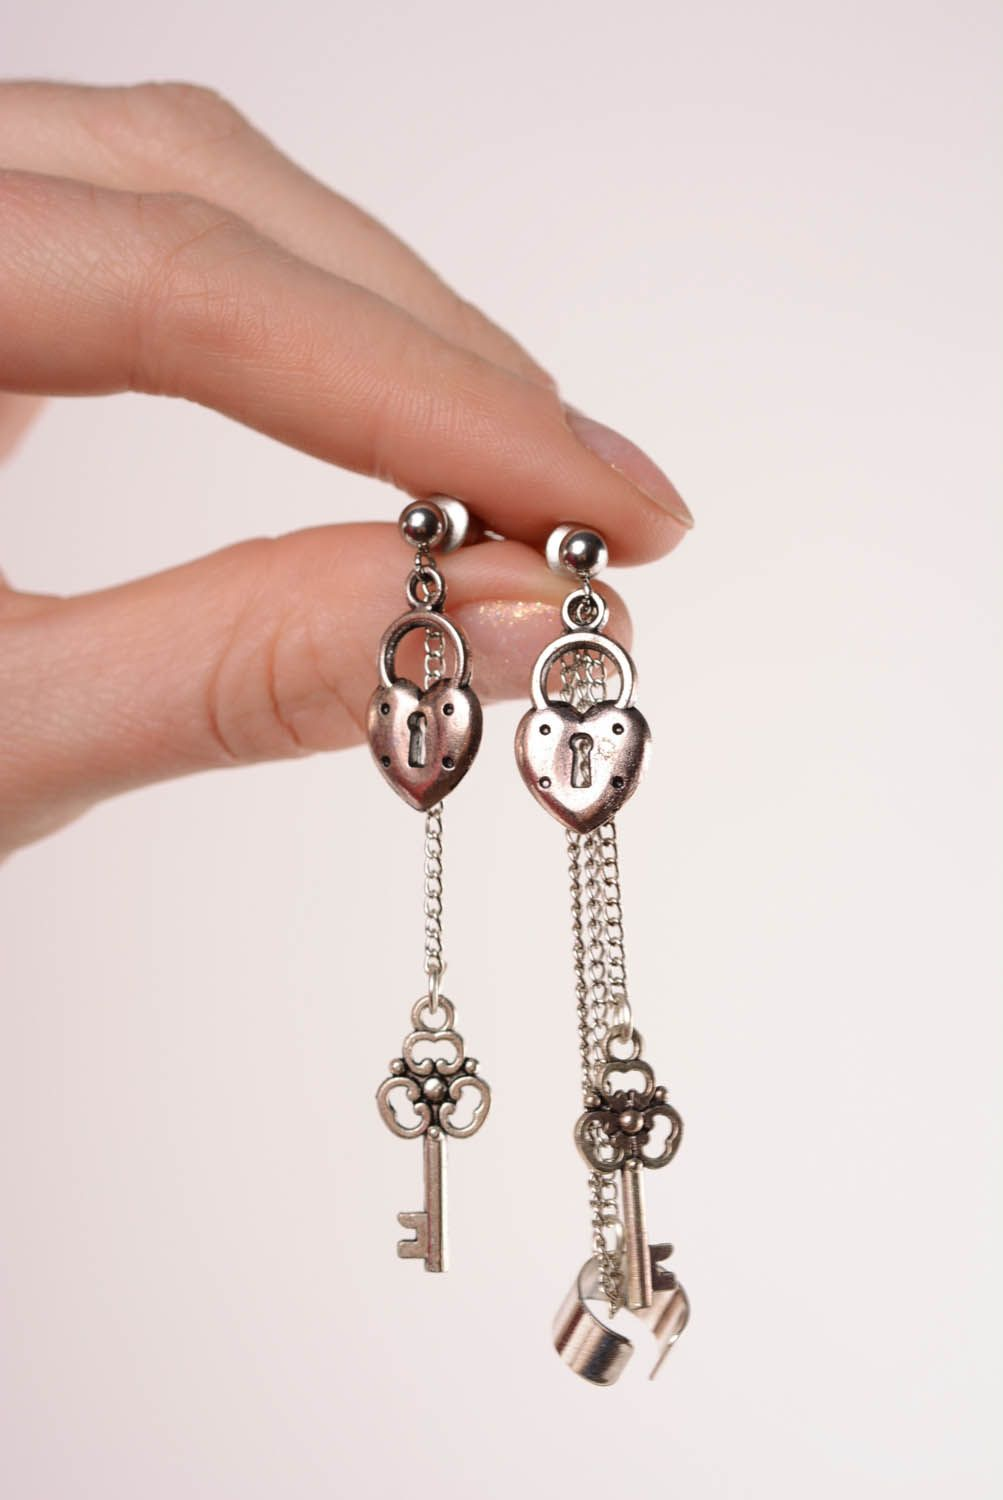 Metal cuffs with chain photo 4